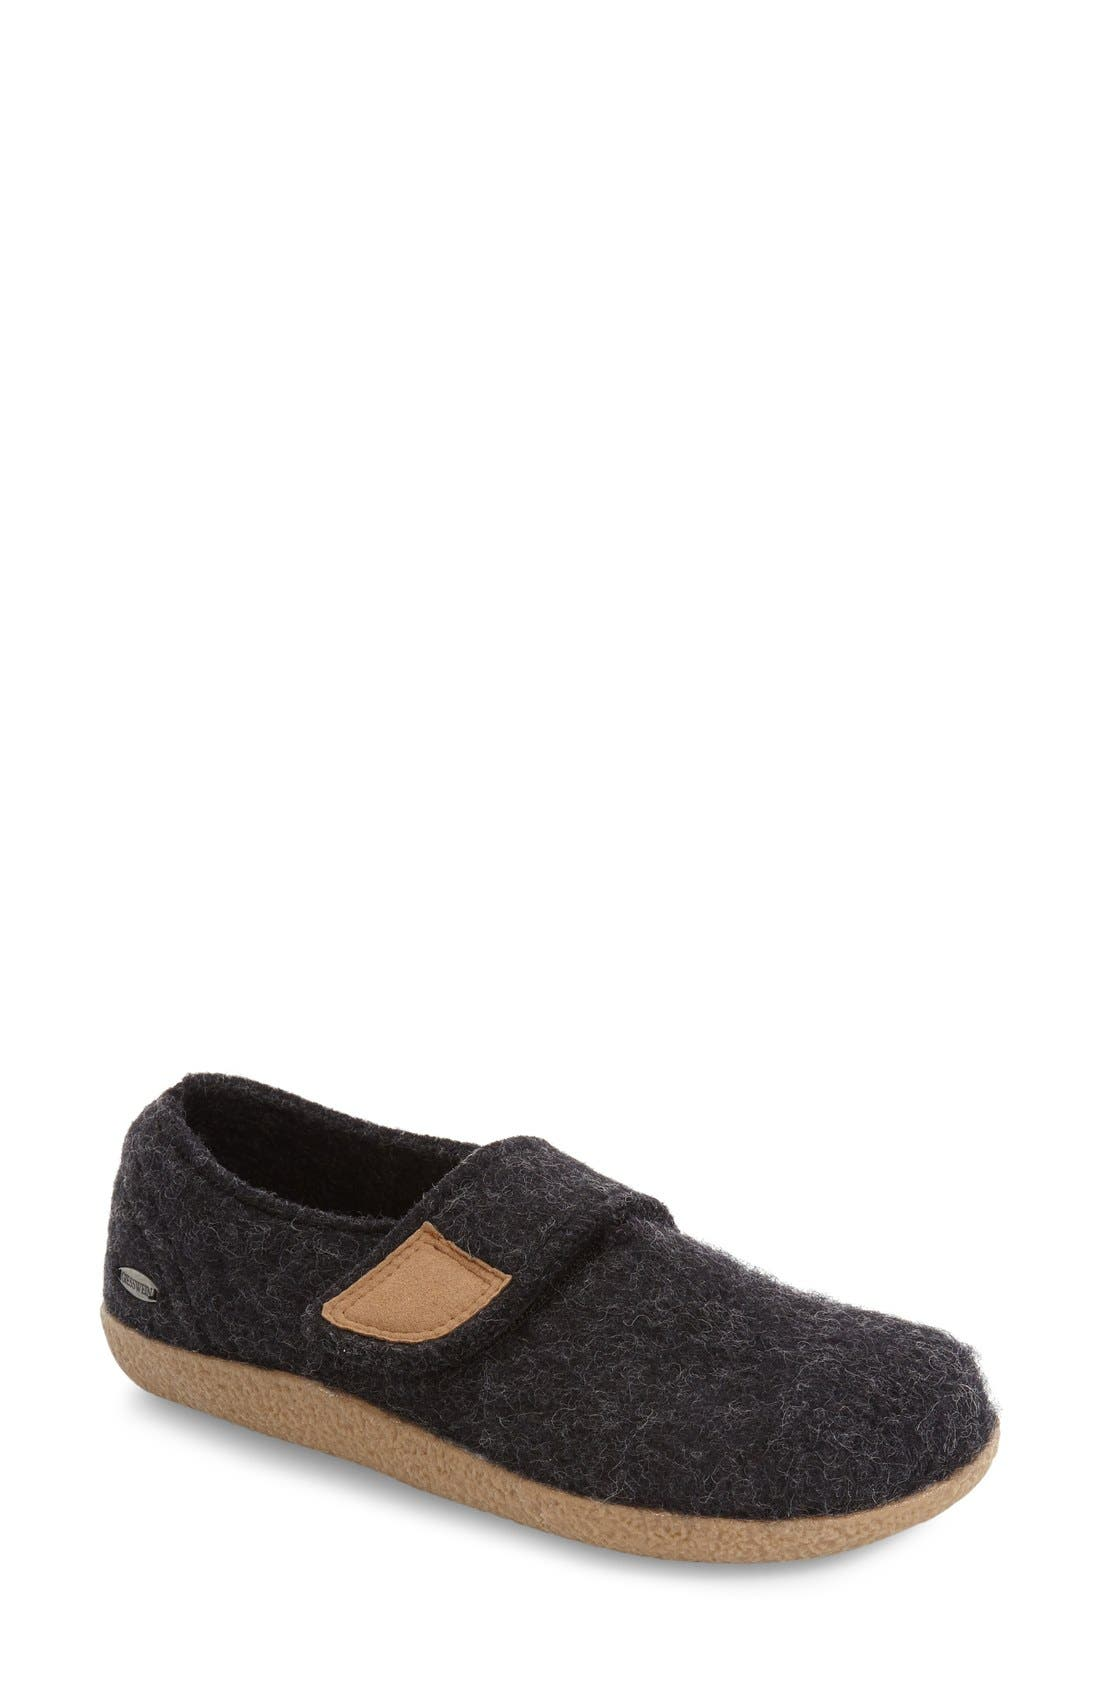 Camden Water Repellent Slipper,                             Main thumbnail 1, color,                             Charcoal Wool